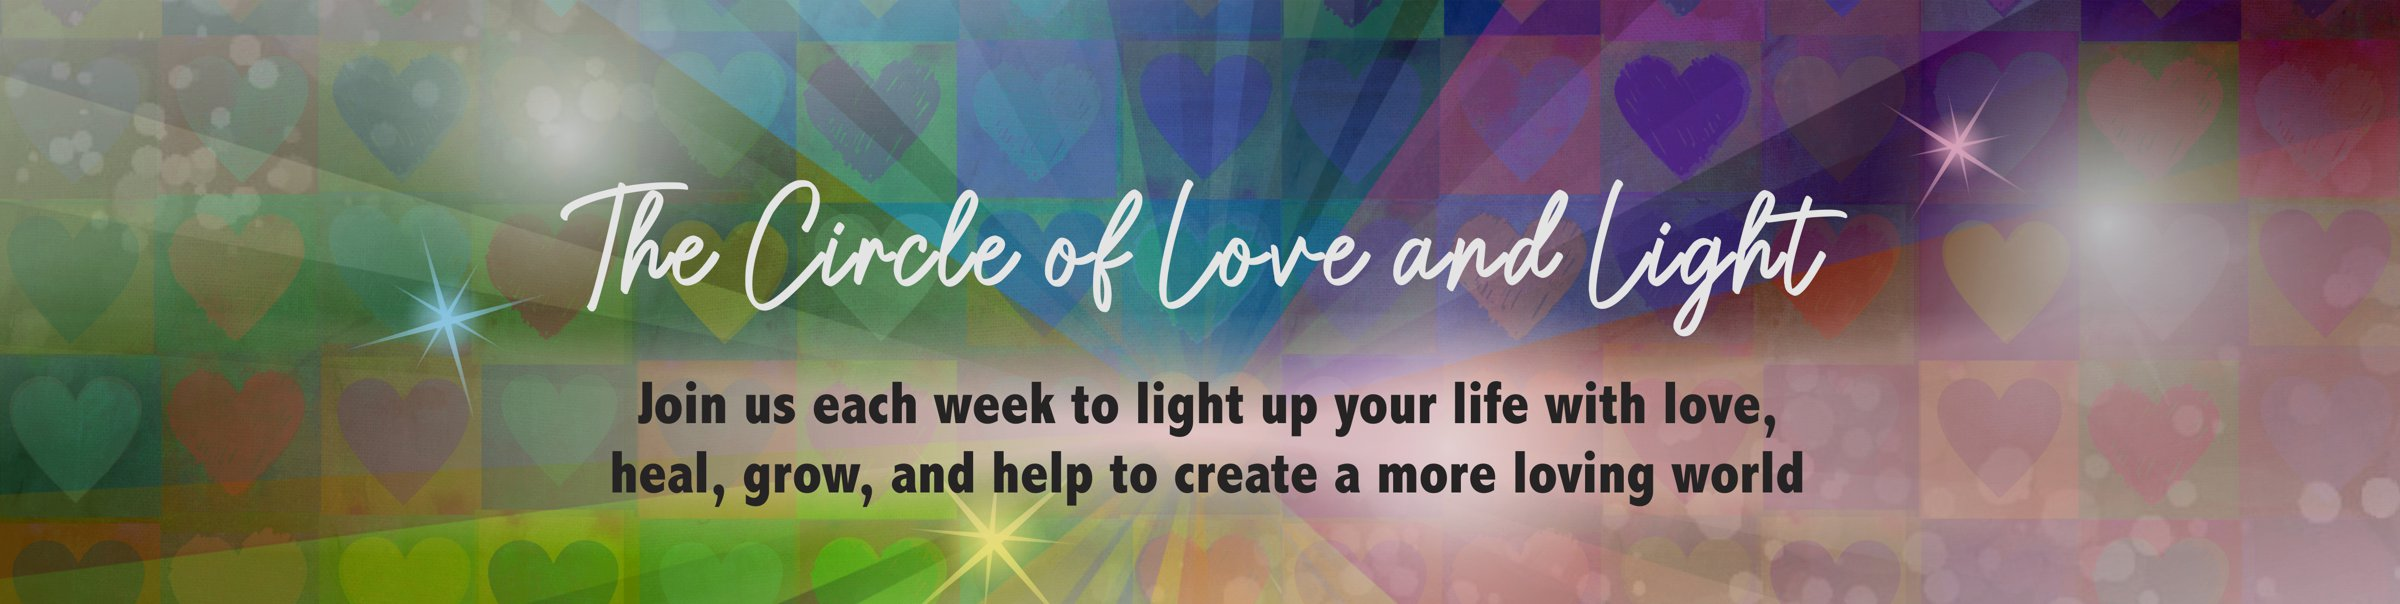 The Circle of Love and Light